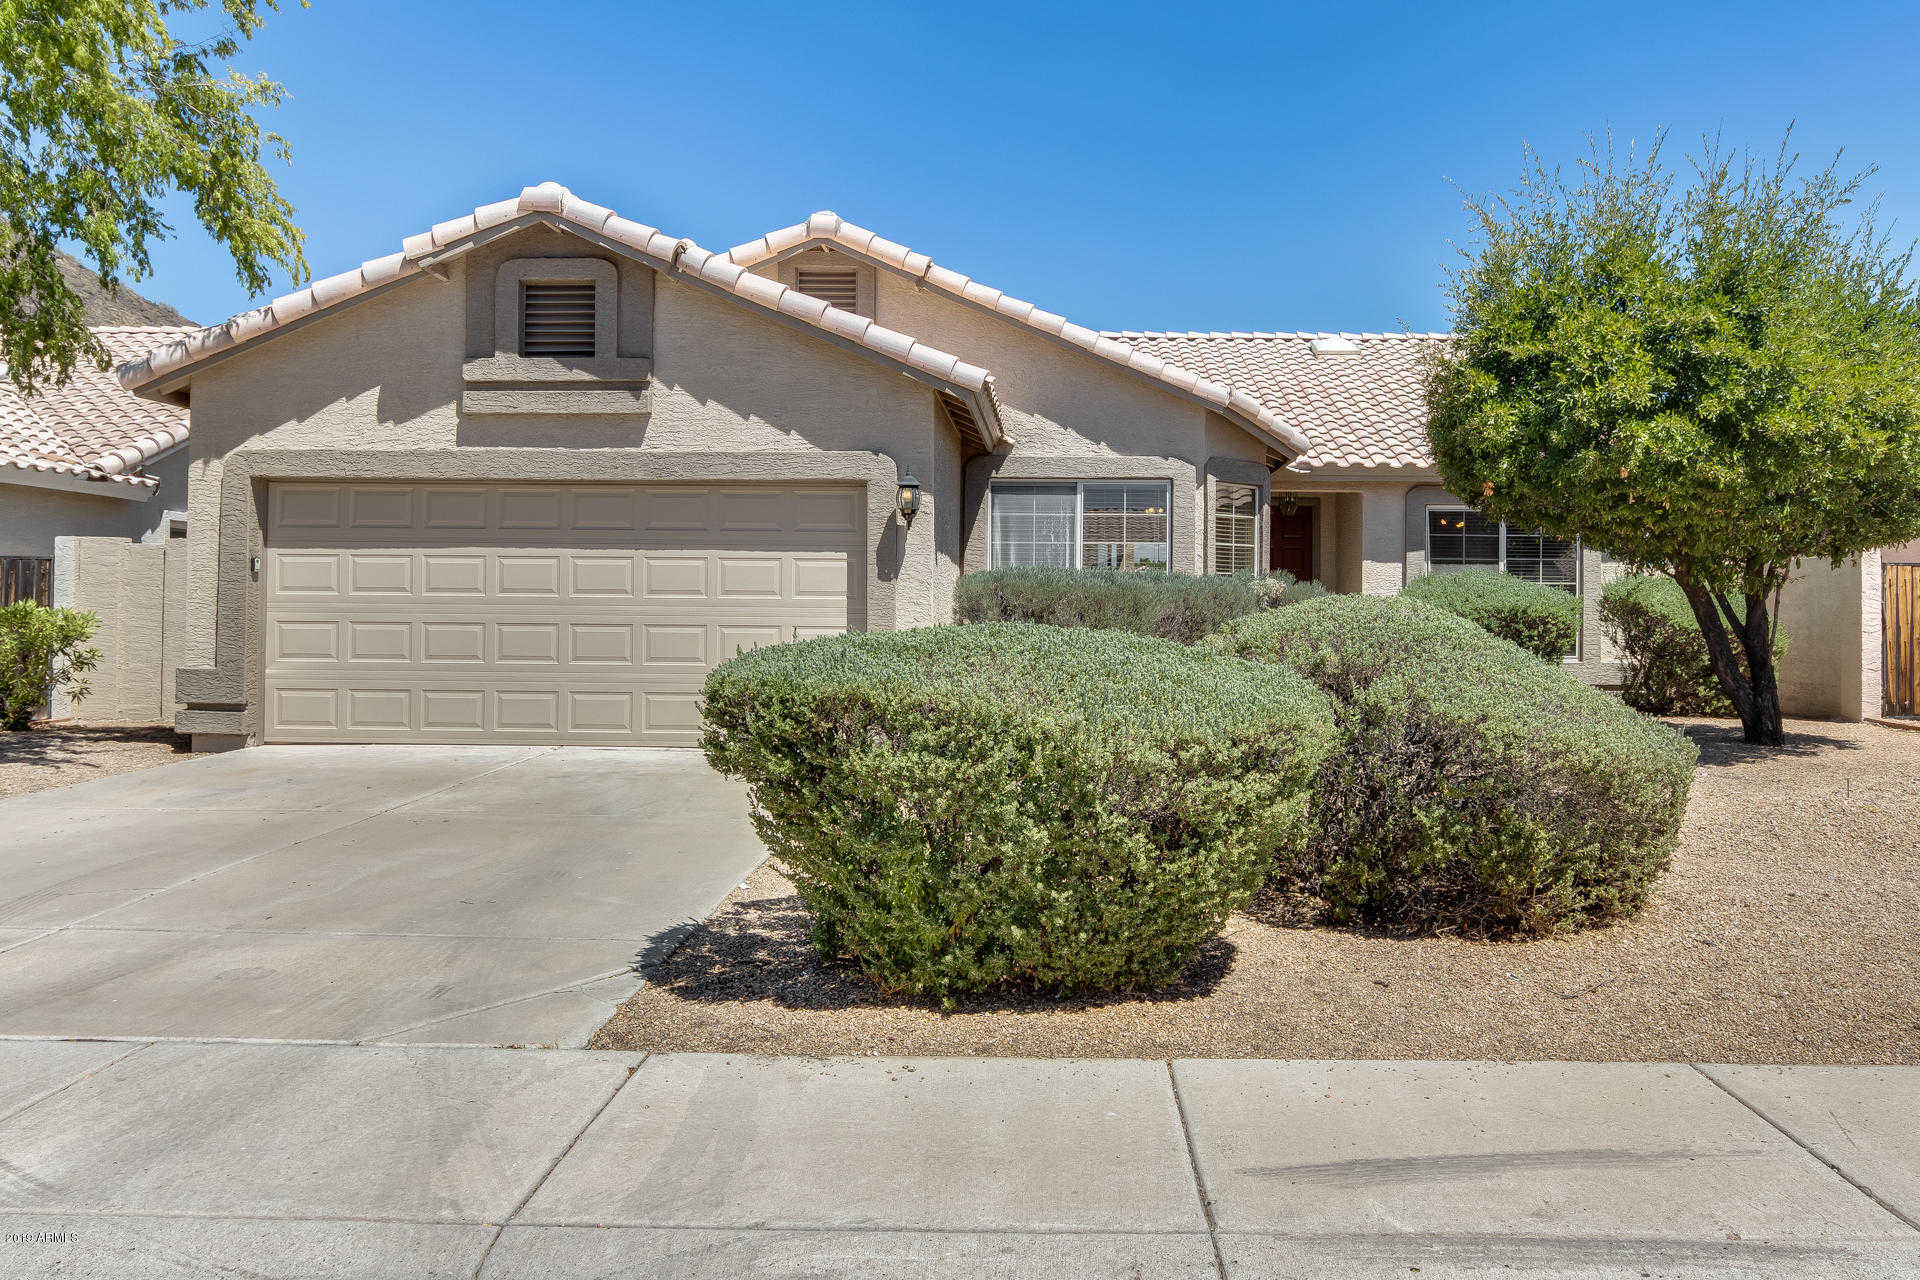 $398,900 - 3Br/2Ba - Home for Sale in Arrowhead Lakes, Glendale